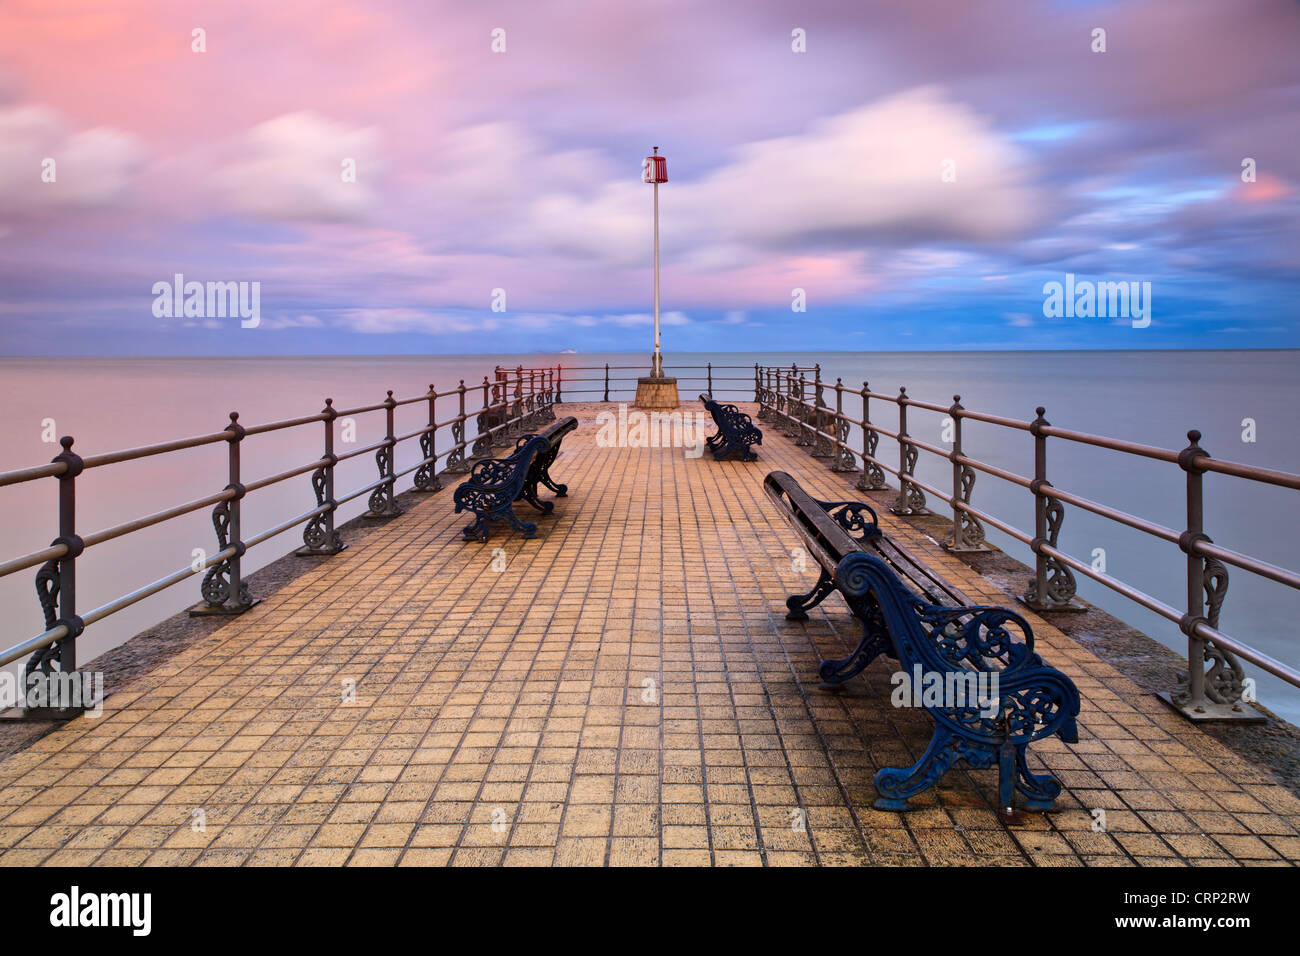 View over benches on the Banjo shaped Jetty in Swanage Bay. - Stock Image